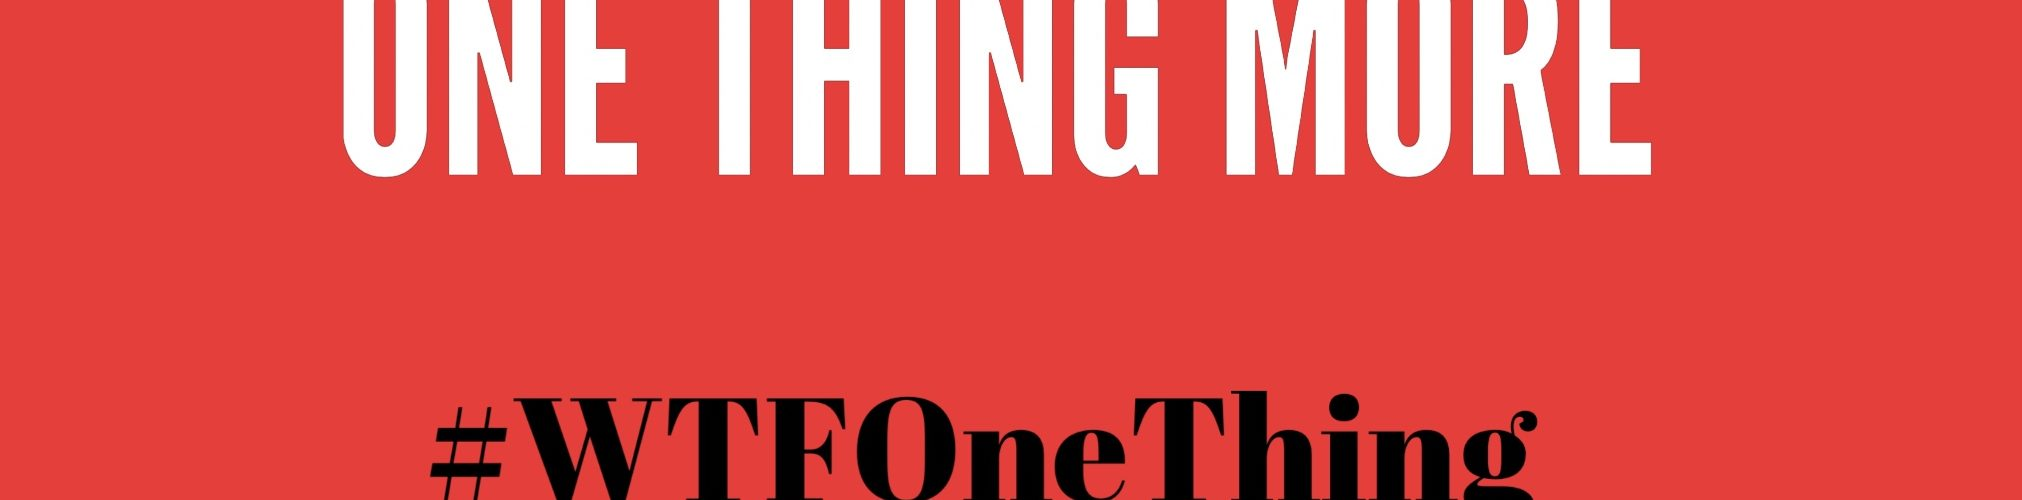 One Thing More #WTFOneThing